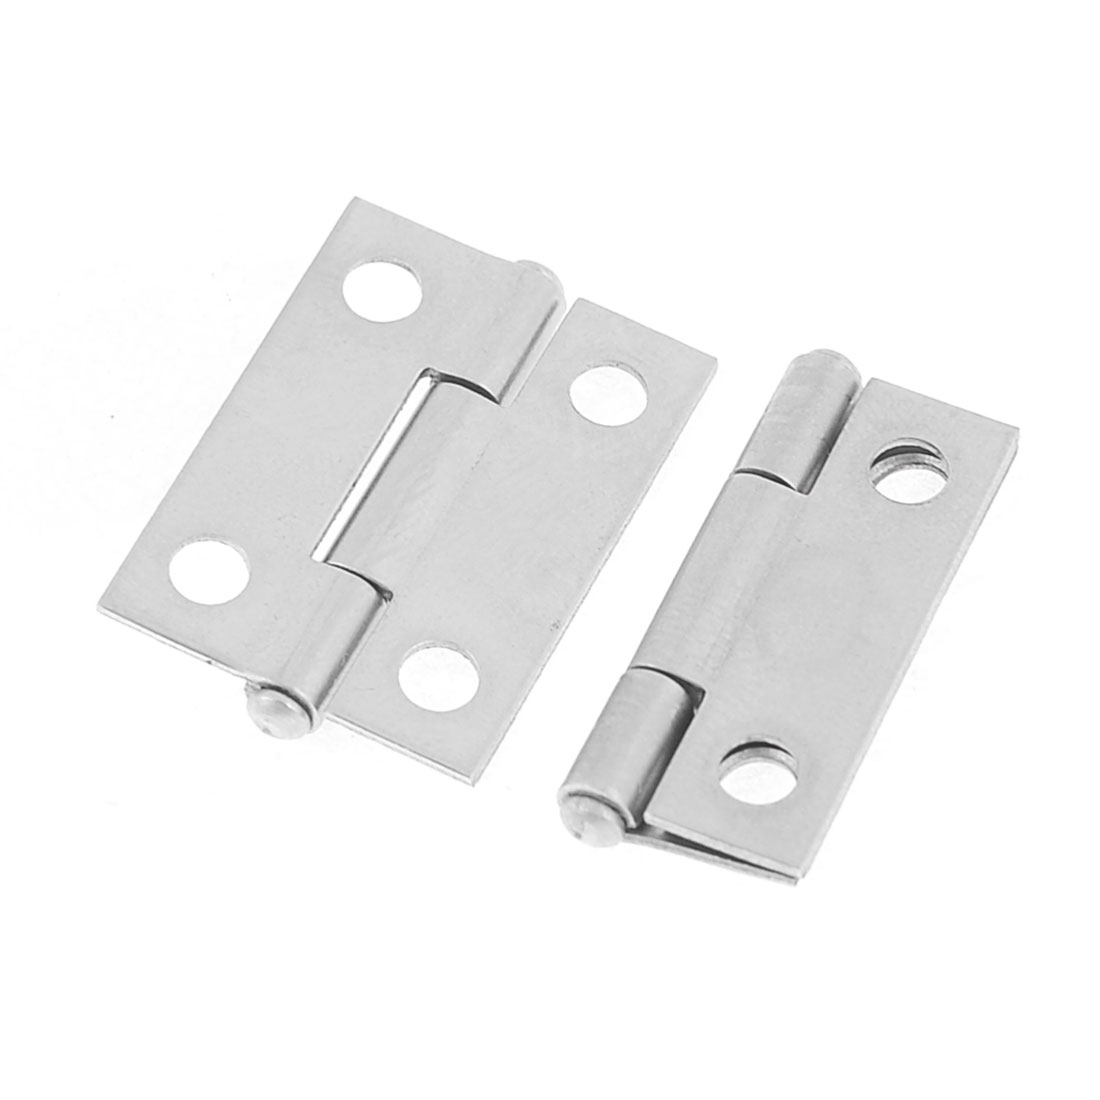 2 Pcs Silver Tone Stainless Steel Cabinet Drawer Door Butt Hinge 2.5 x 1.8cm